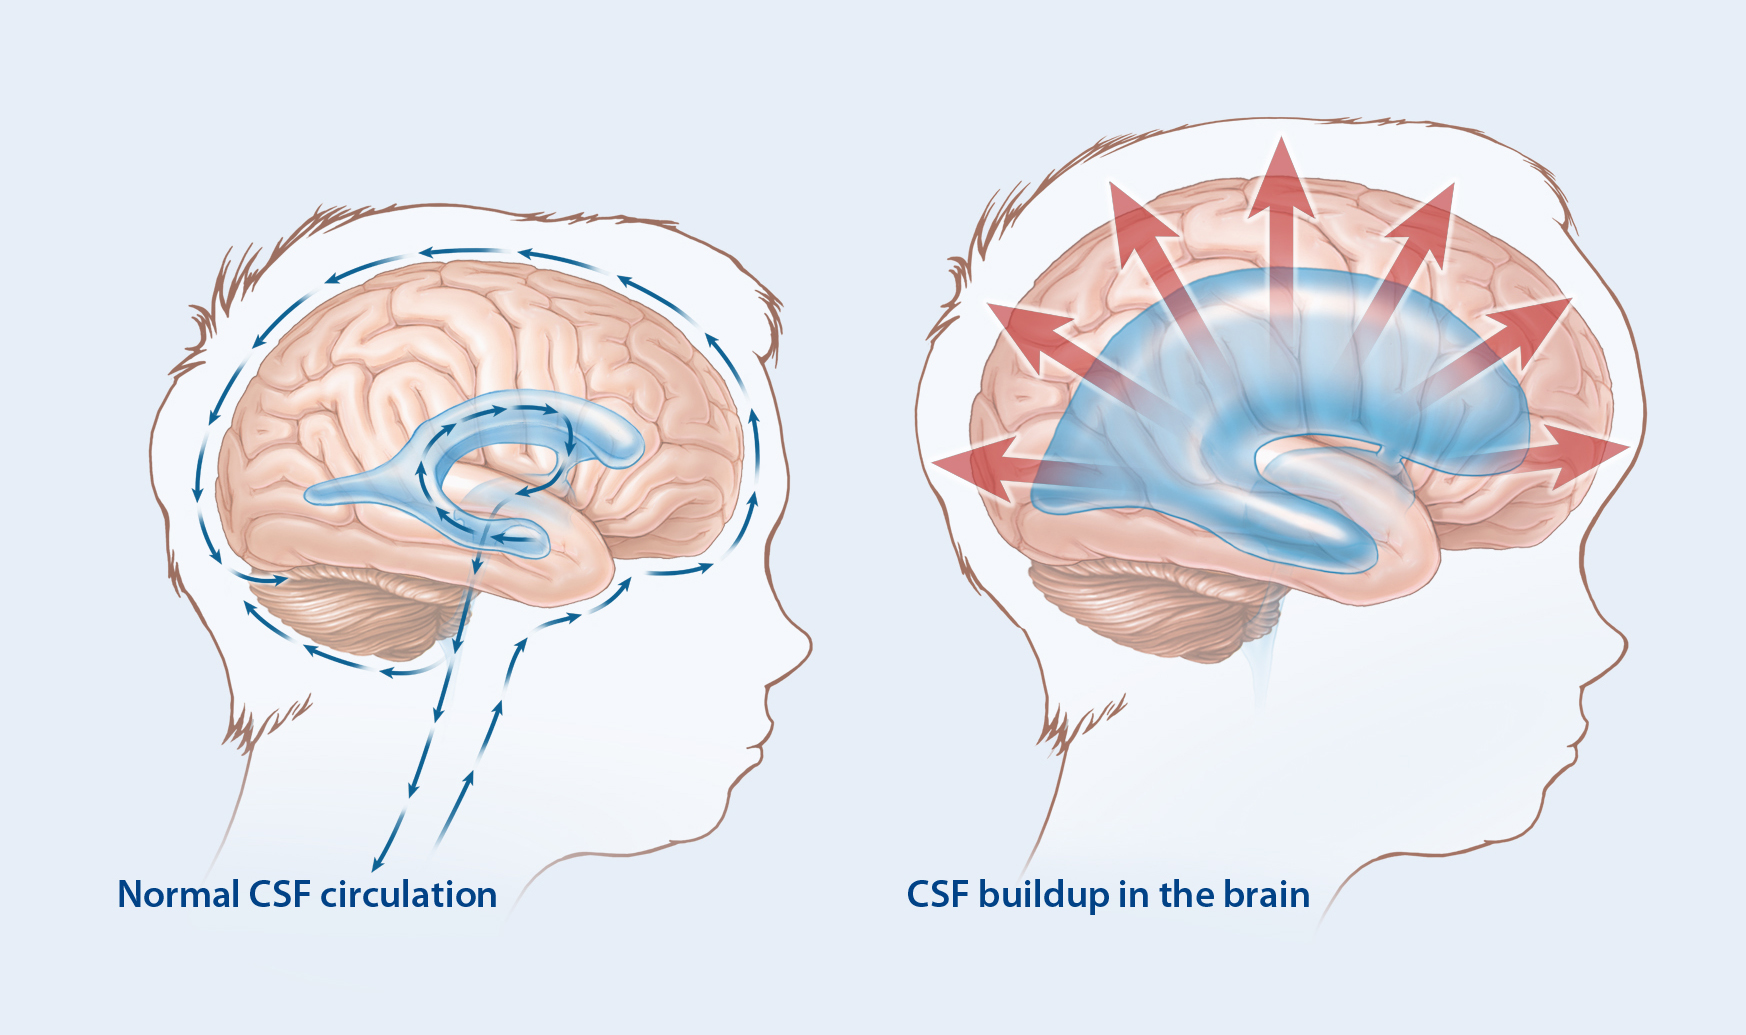 Illustration comparing normal central spinal fluid circulation with central spinal fluid buildup on the brain